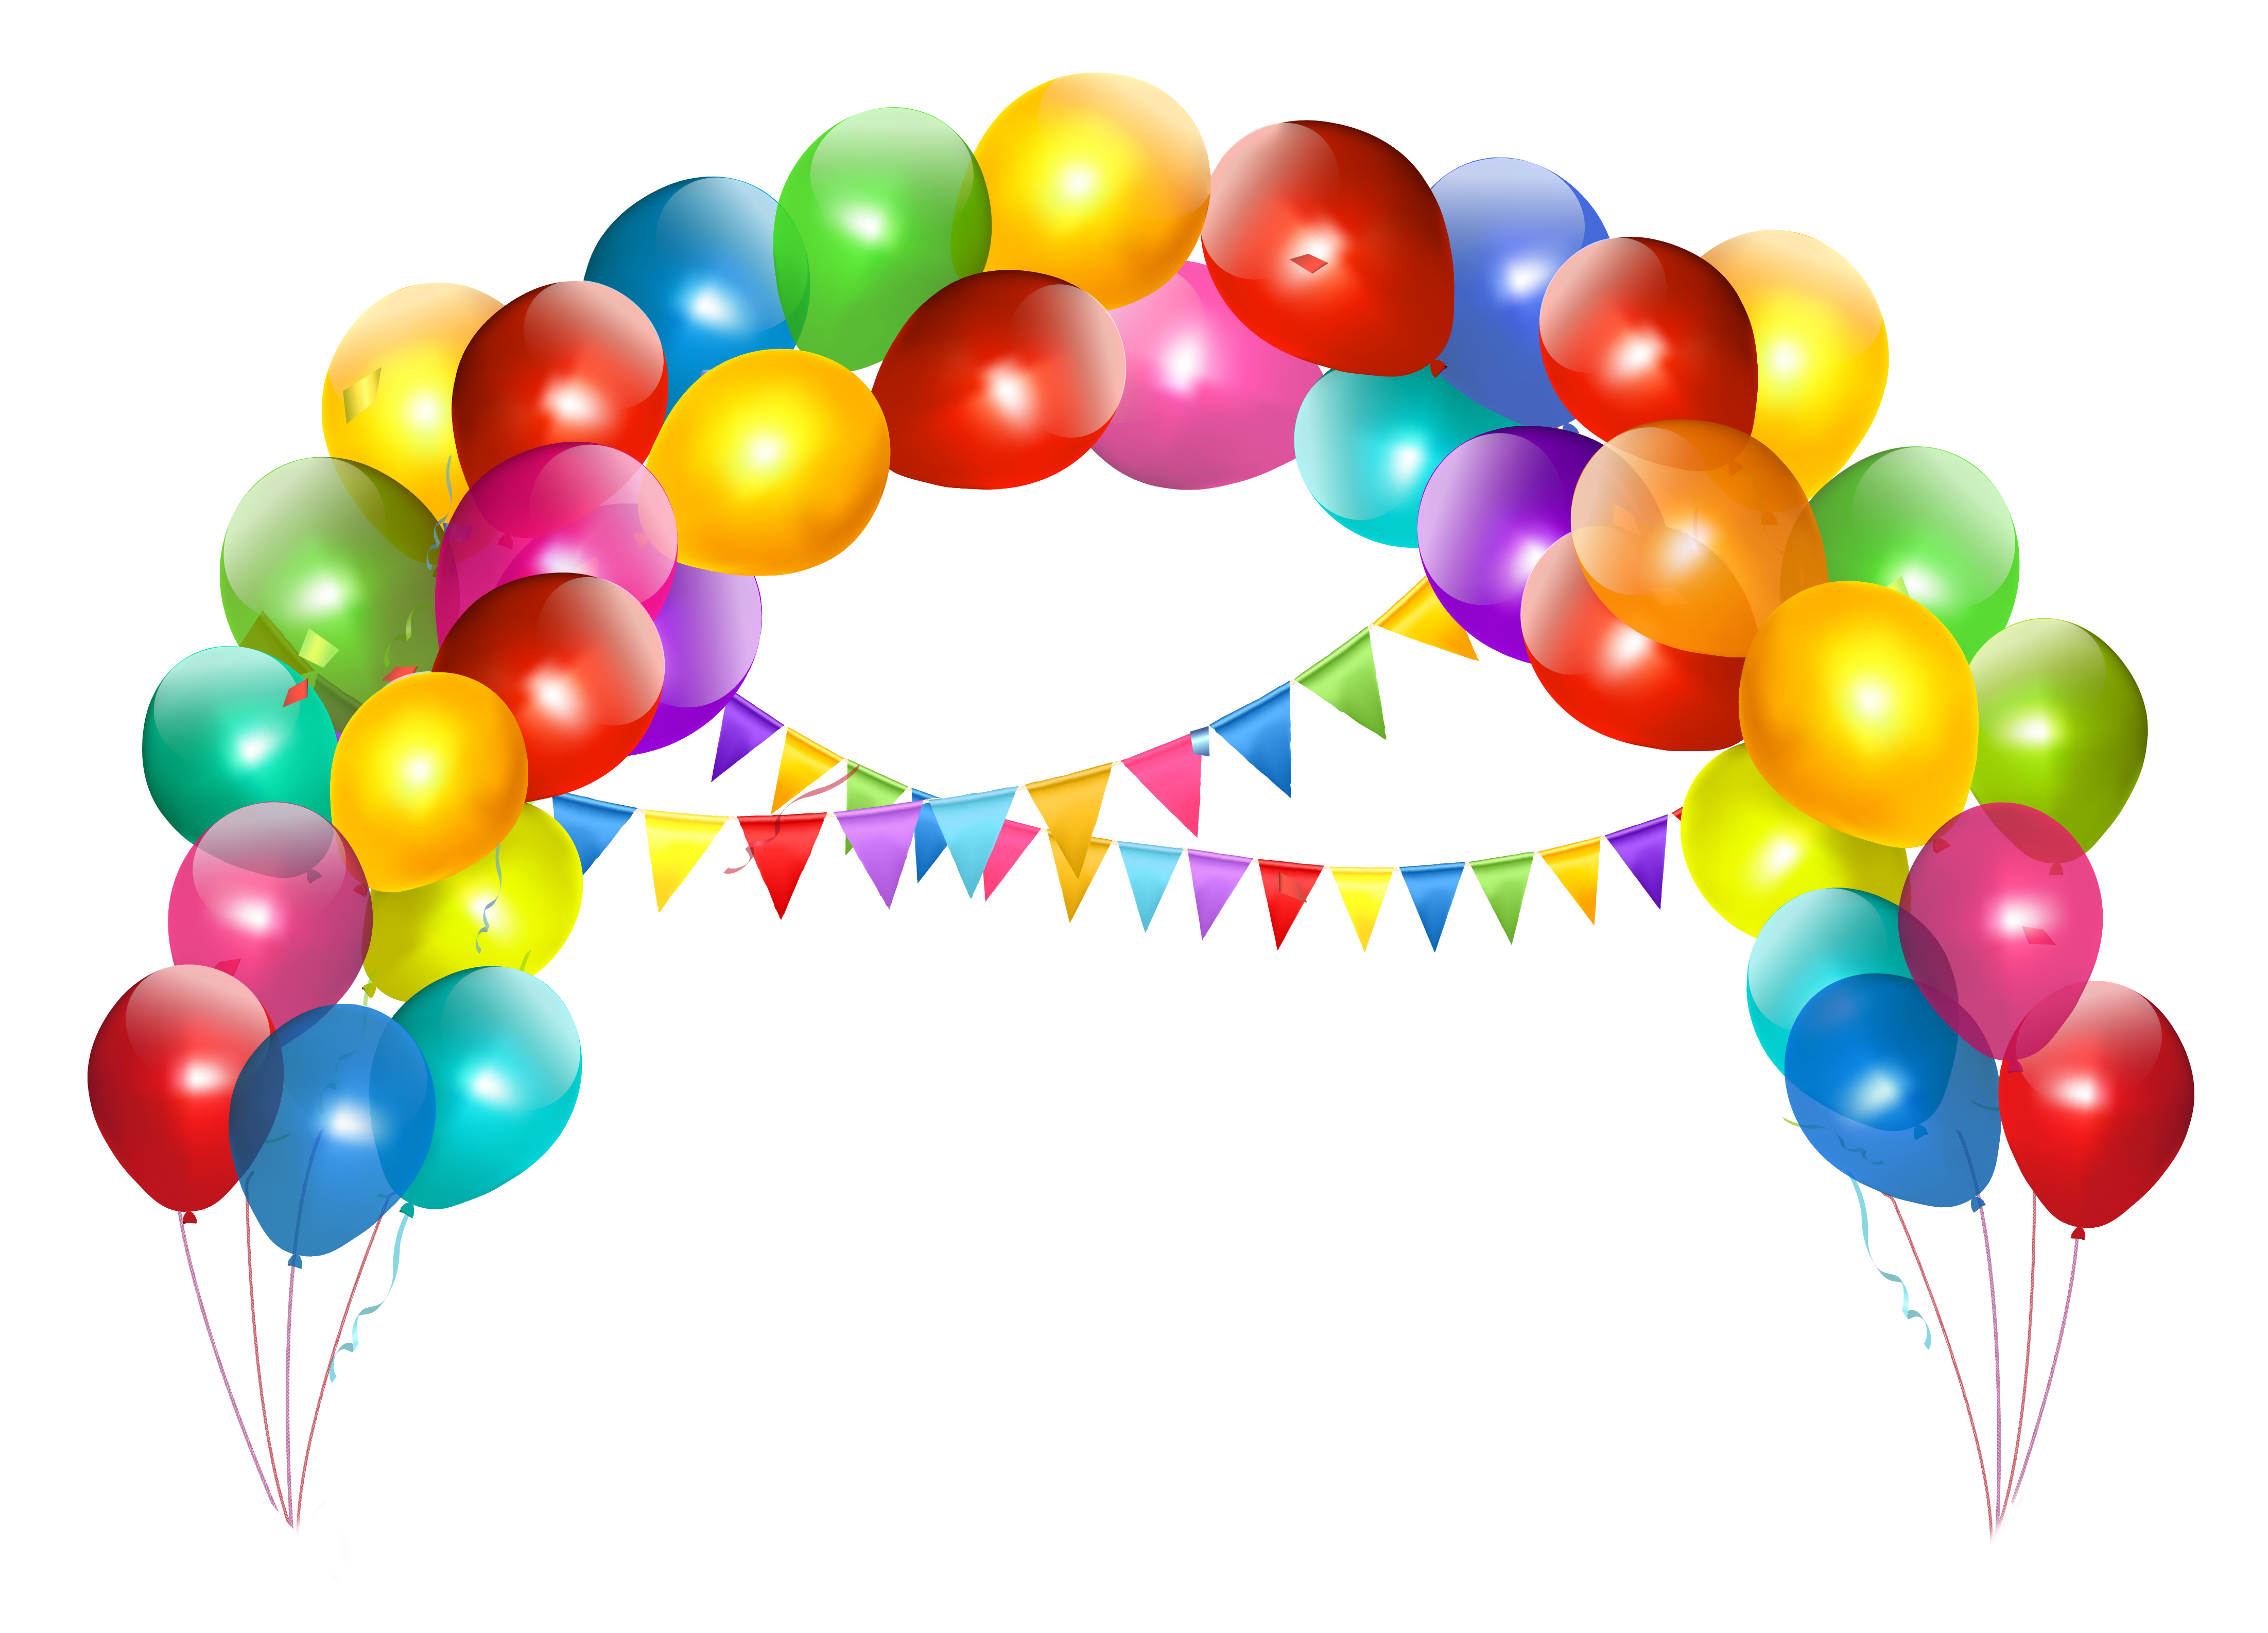 Transparent Balloon Arch with Decoration Clipart.